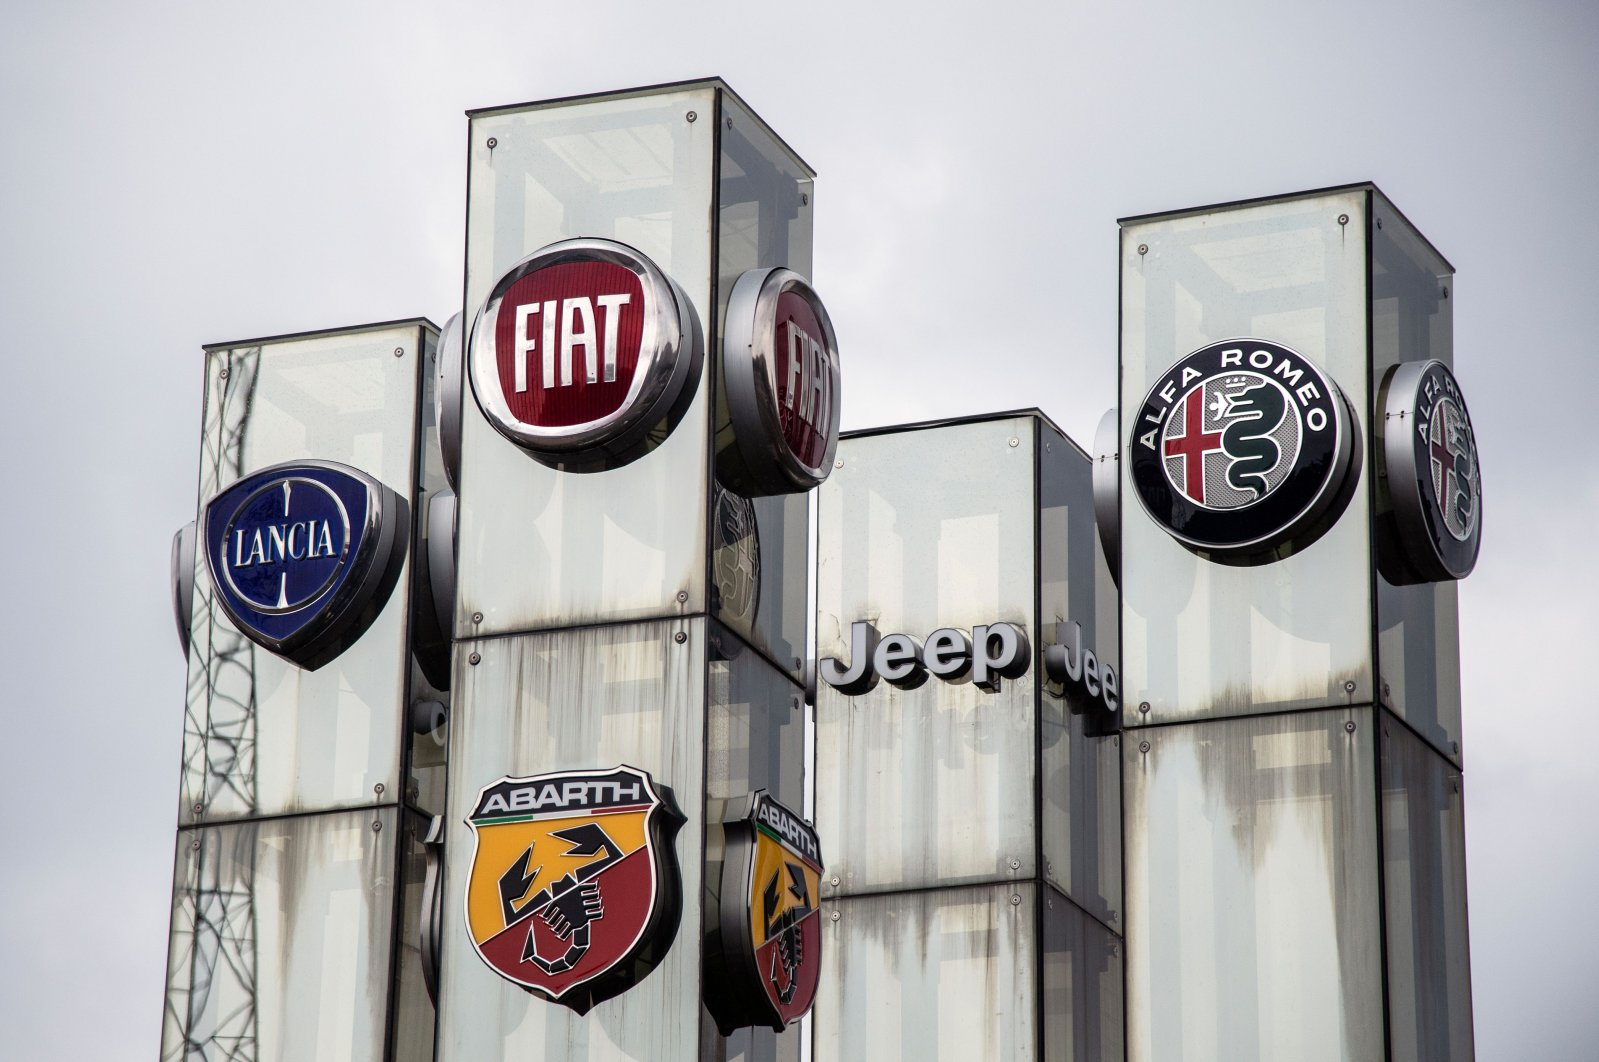 The logos of Lancia, Fiat, Abarth Jeep and Alfa Romeo automakers, brands of Fiat Chrysler Automobiles (FCA) company, Turin, Italy, May 27, 2019. (AFP Photo)